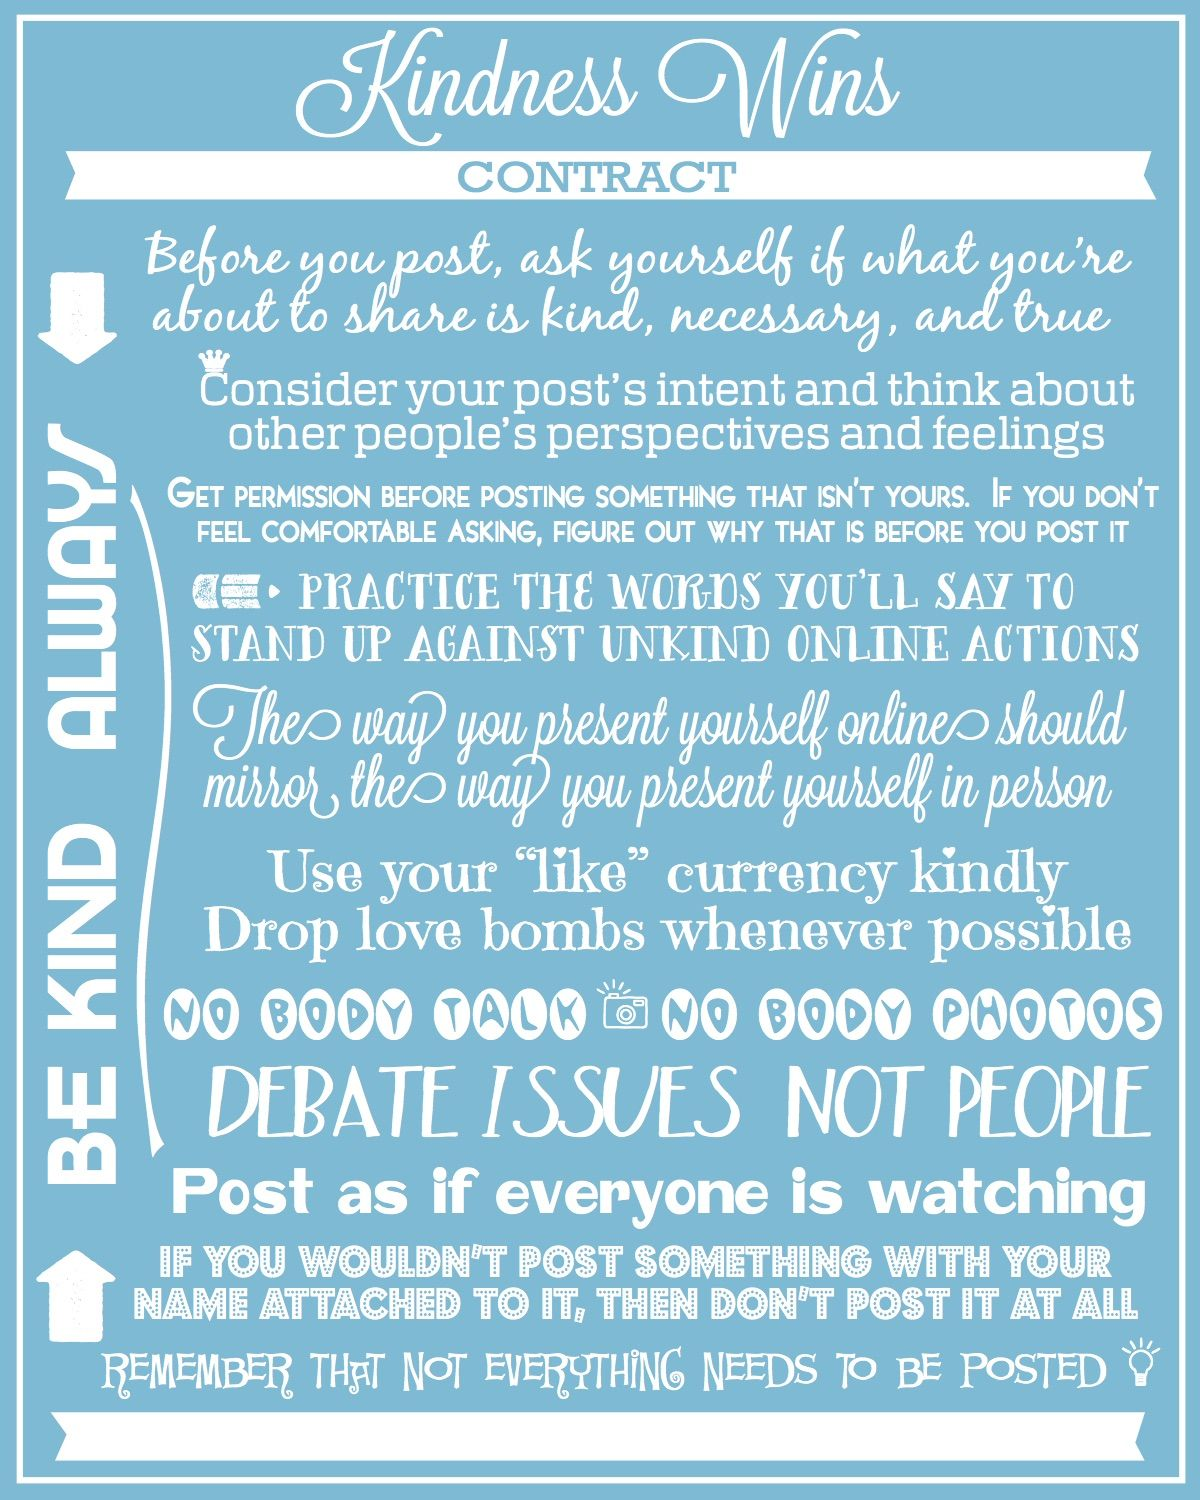 Kindness Wins Contract | Pinterest